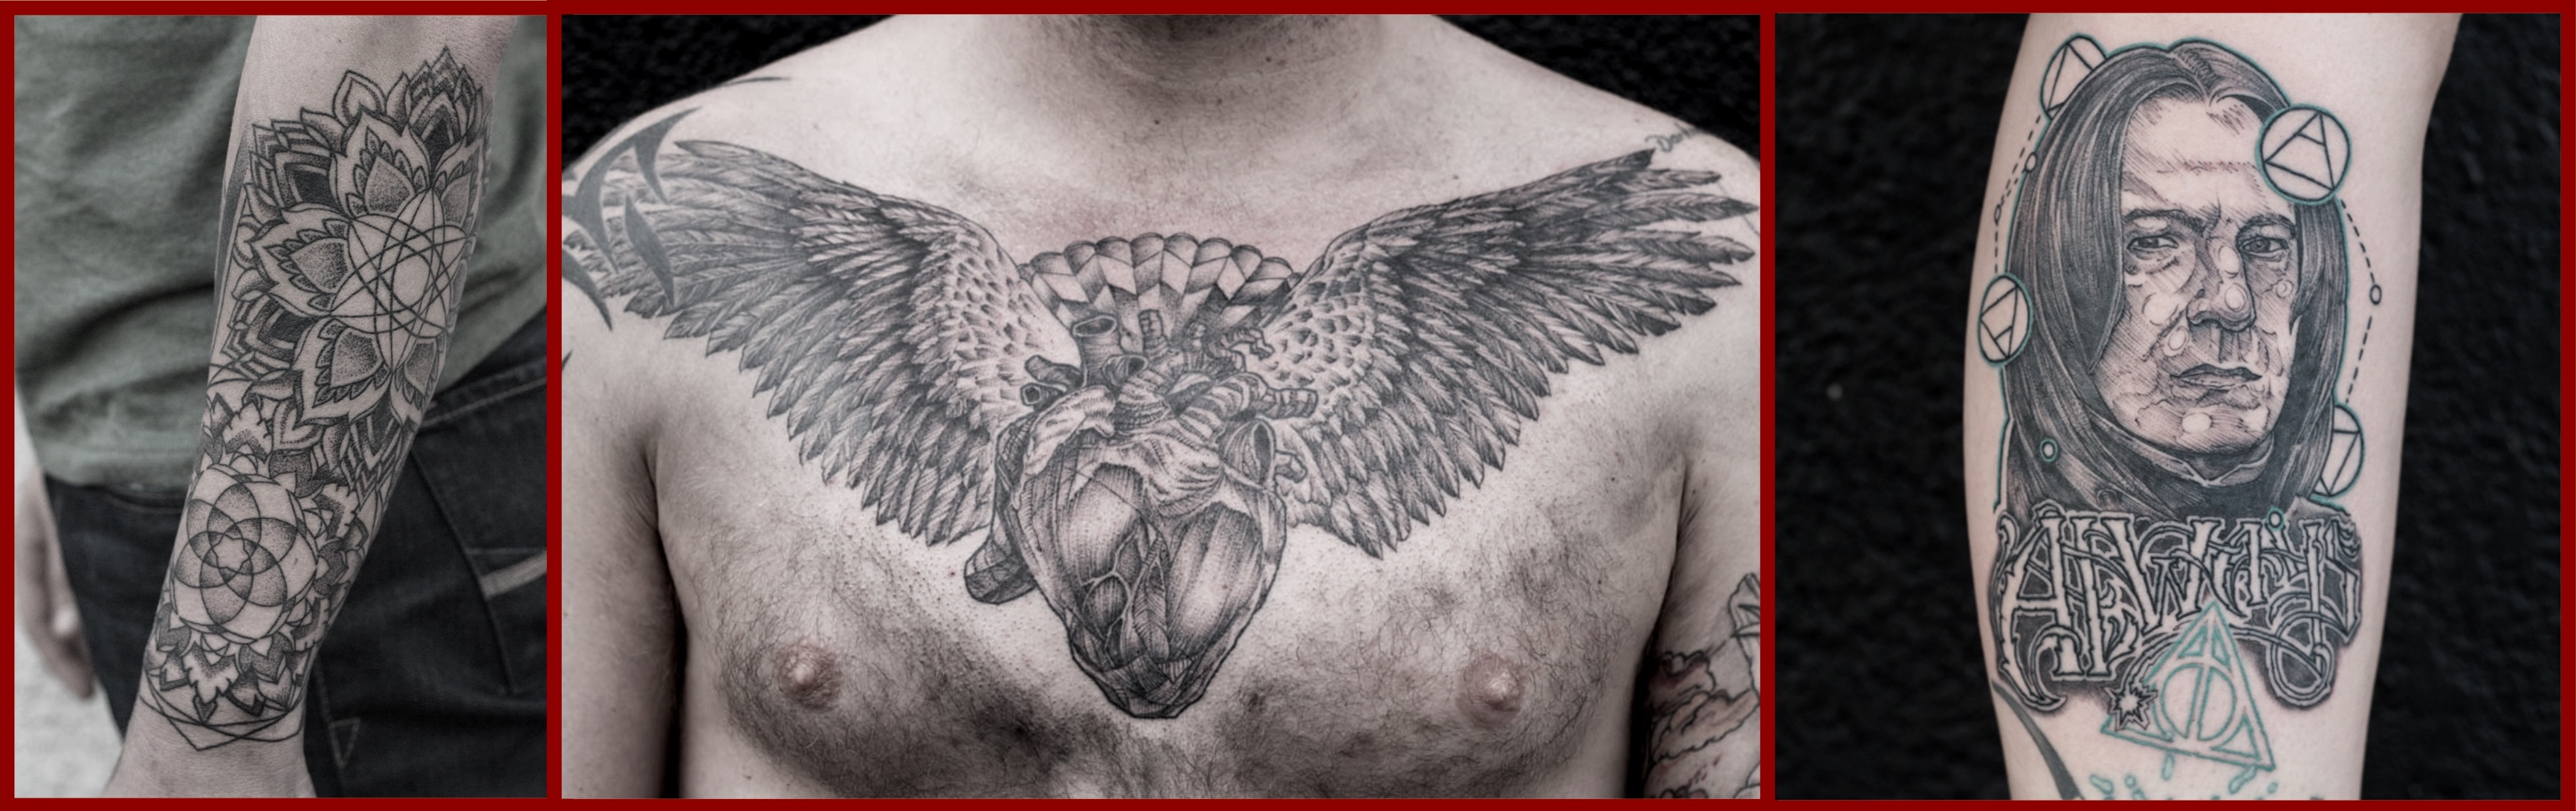 Tattoos work by the talented Sean Perrins